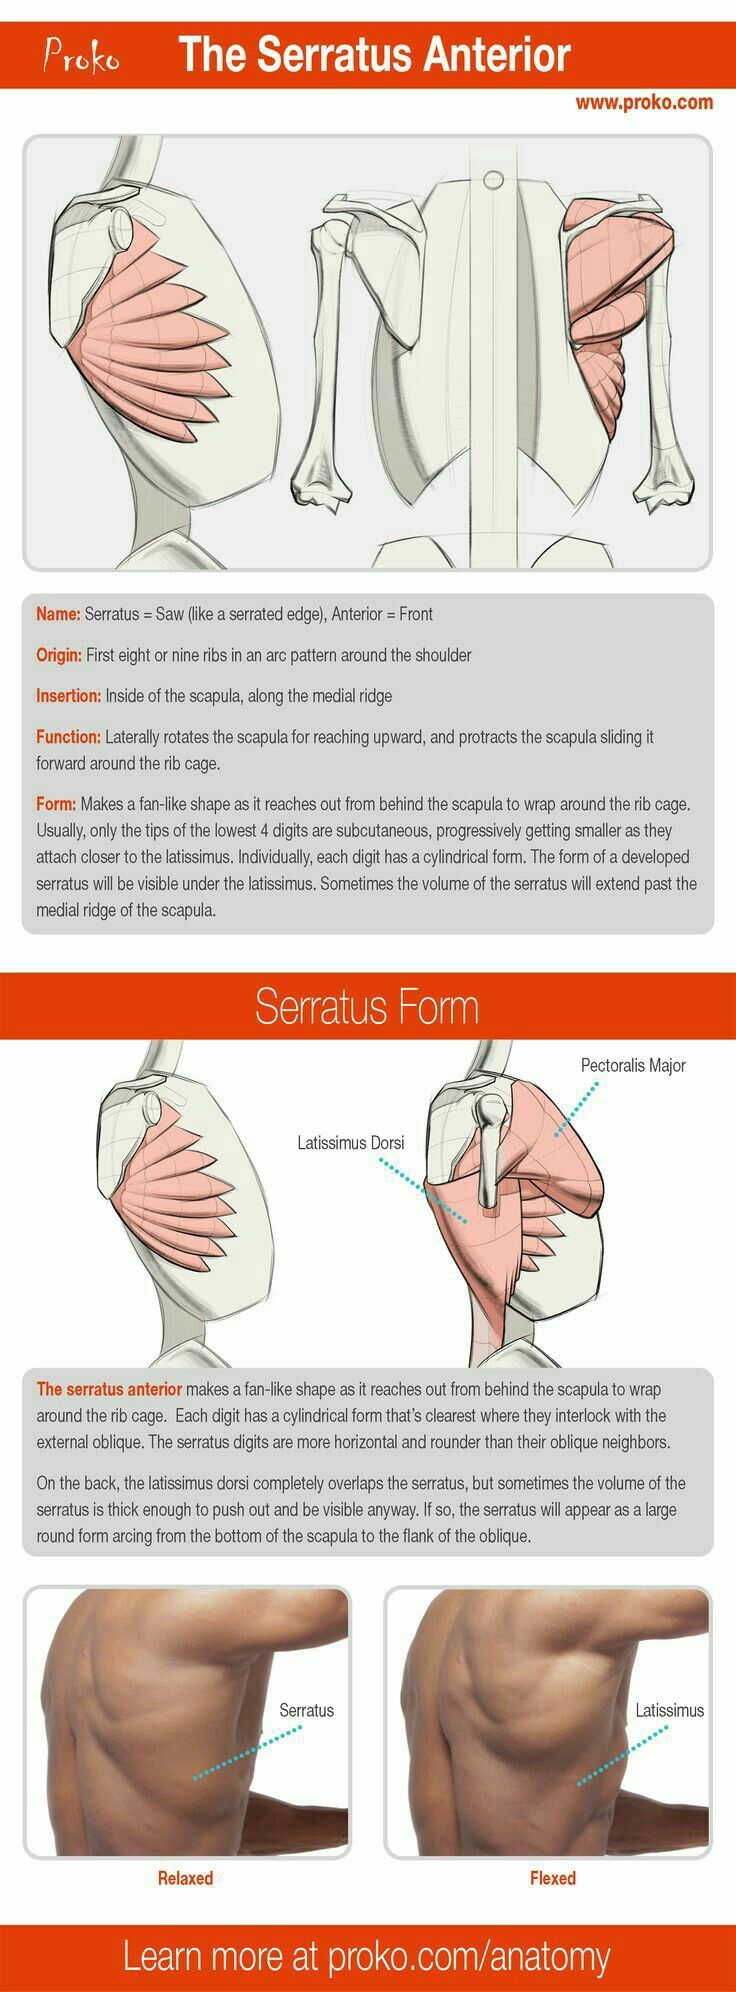 22 best Anatomy Reference images on Pinterest | Human anatomy ...